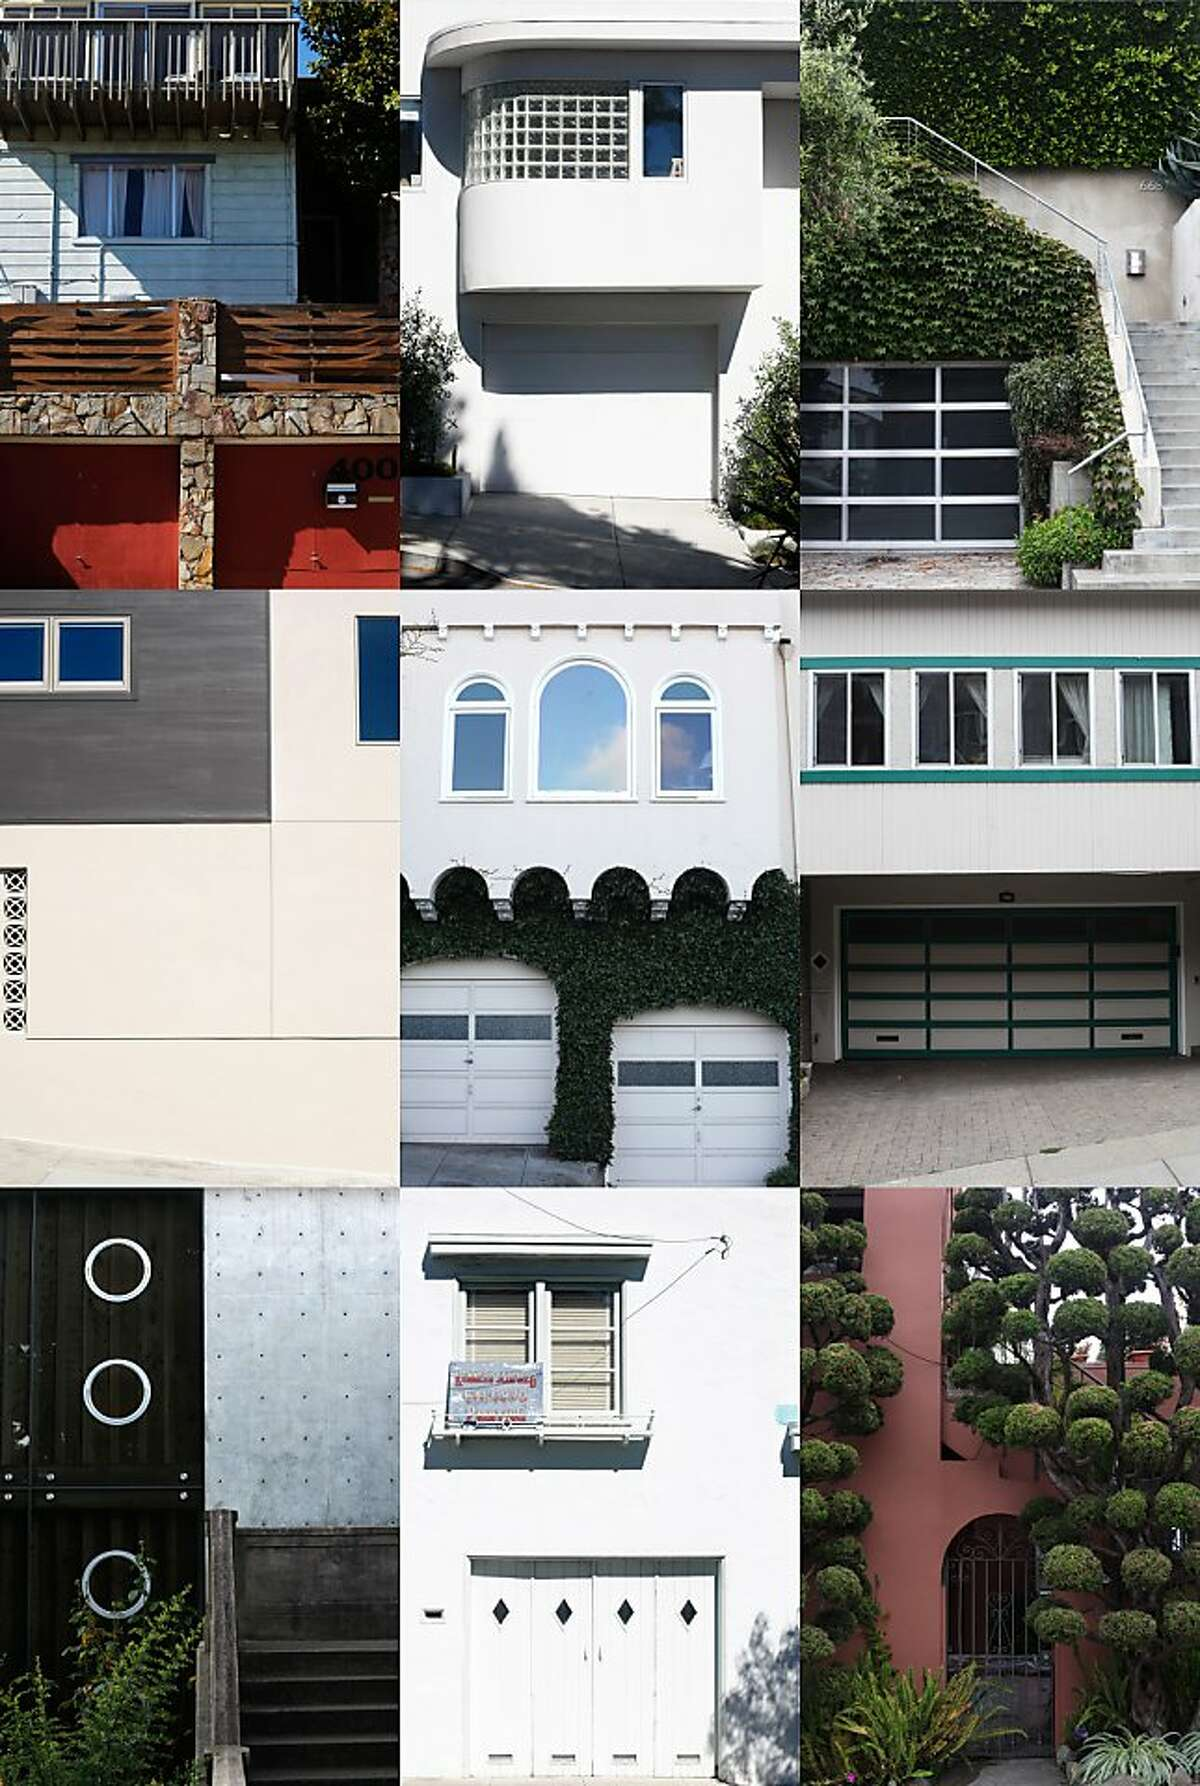 Nine different homes located within blocks of one another in the Dolores Heights neighborhood demonstrate the diversity of architectural style of the neighborhood in San Francisco, Calif.